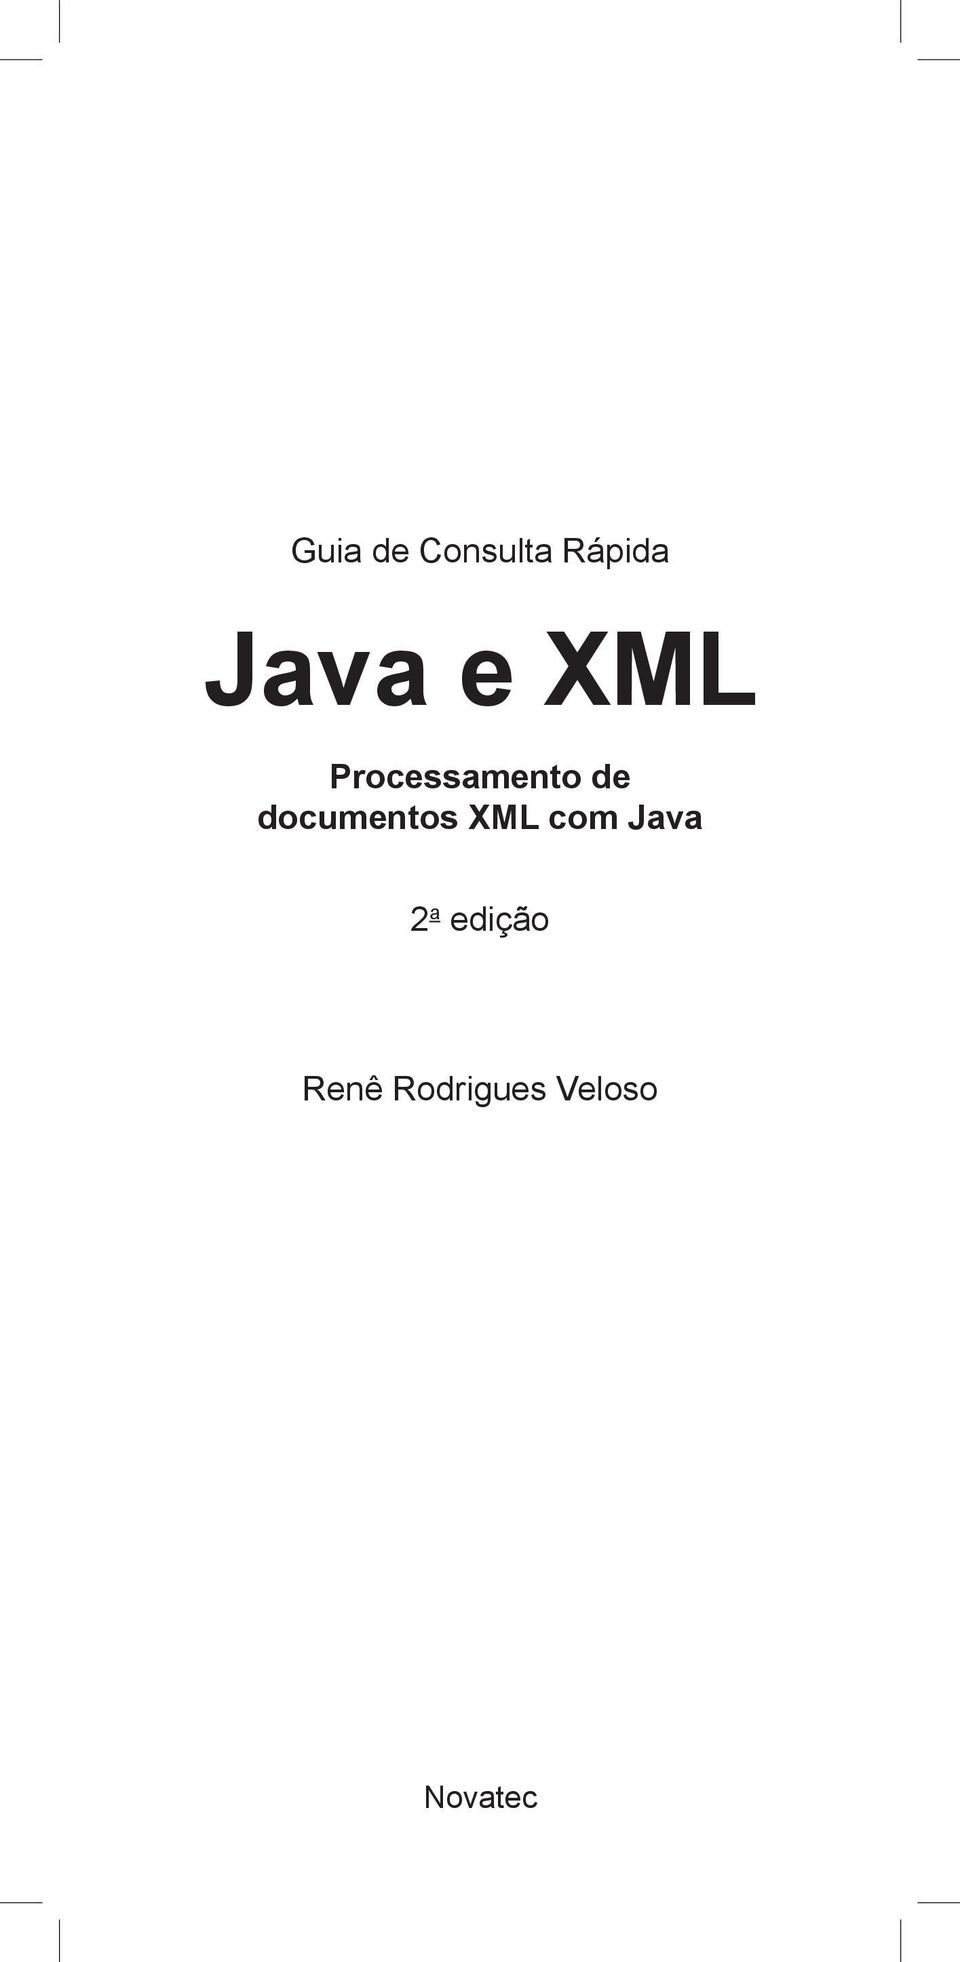 documentos XML com Java 2 a